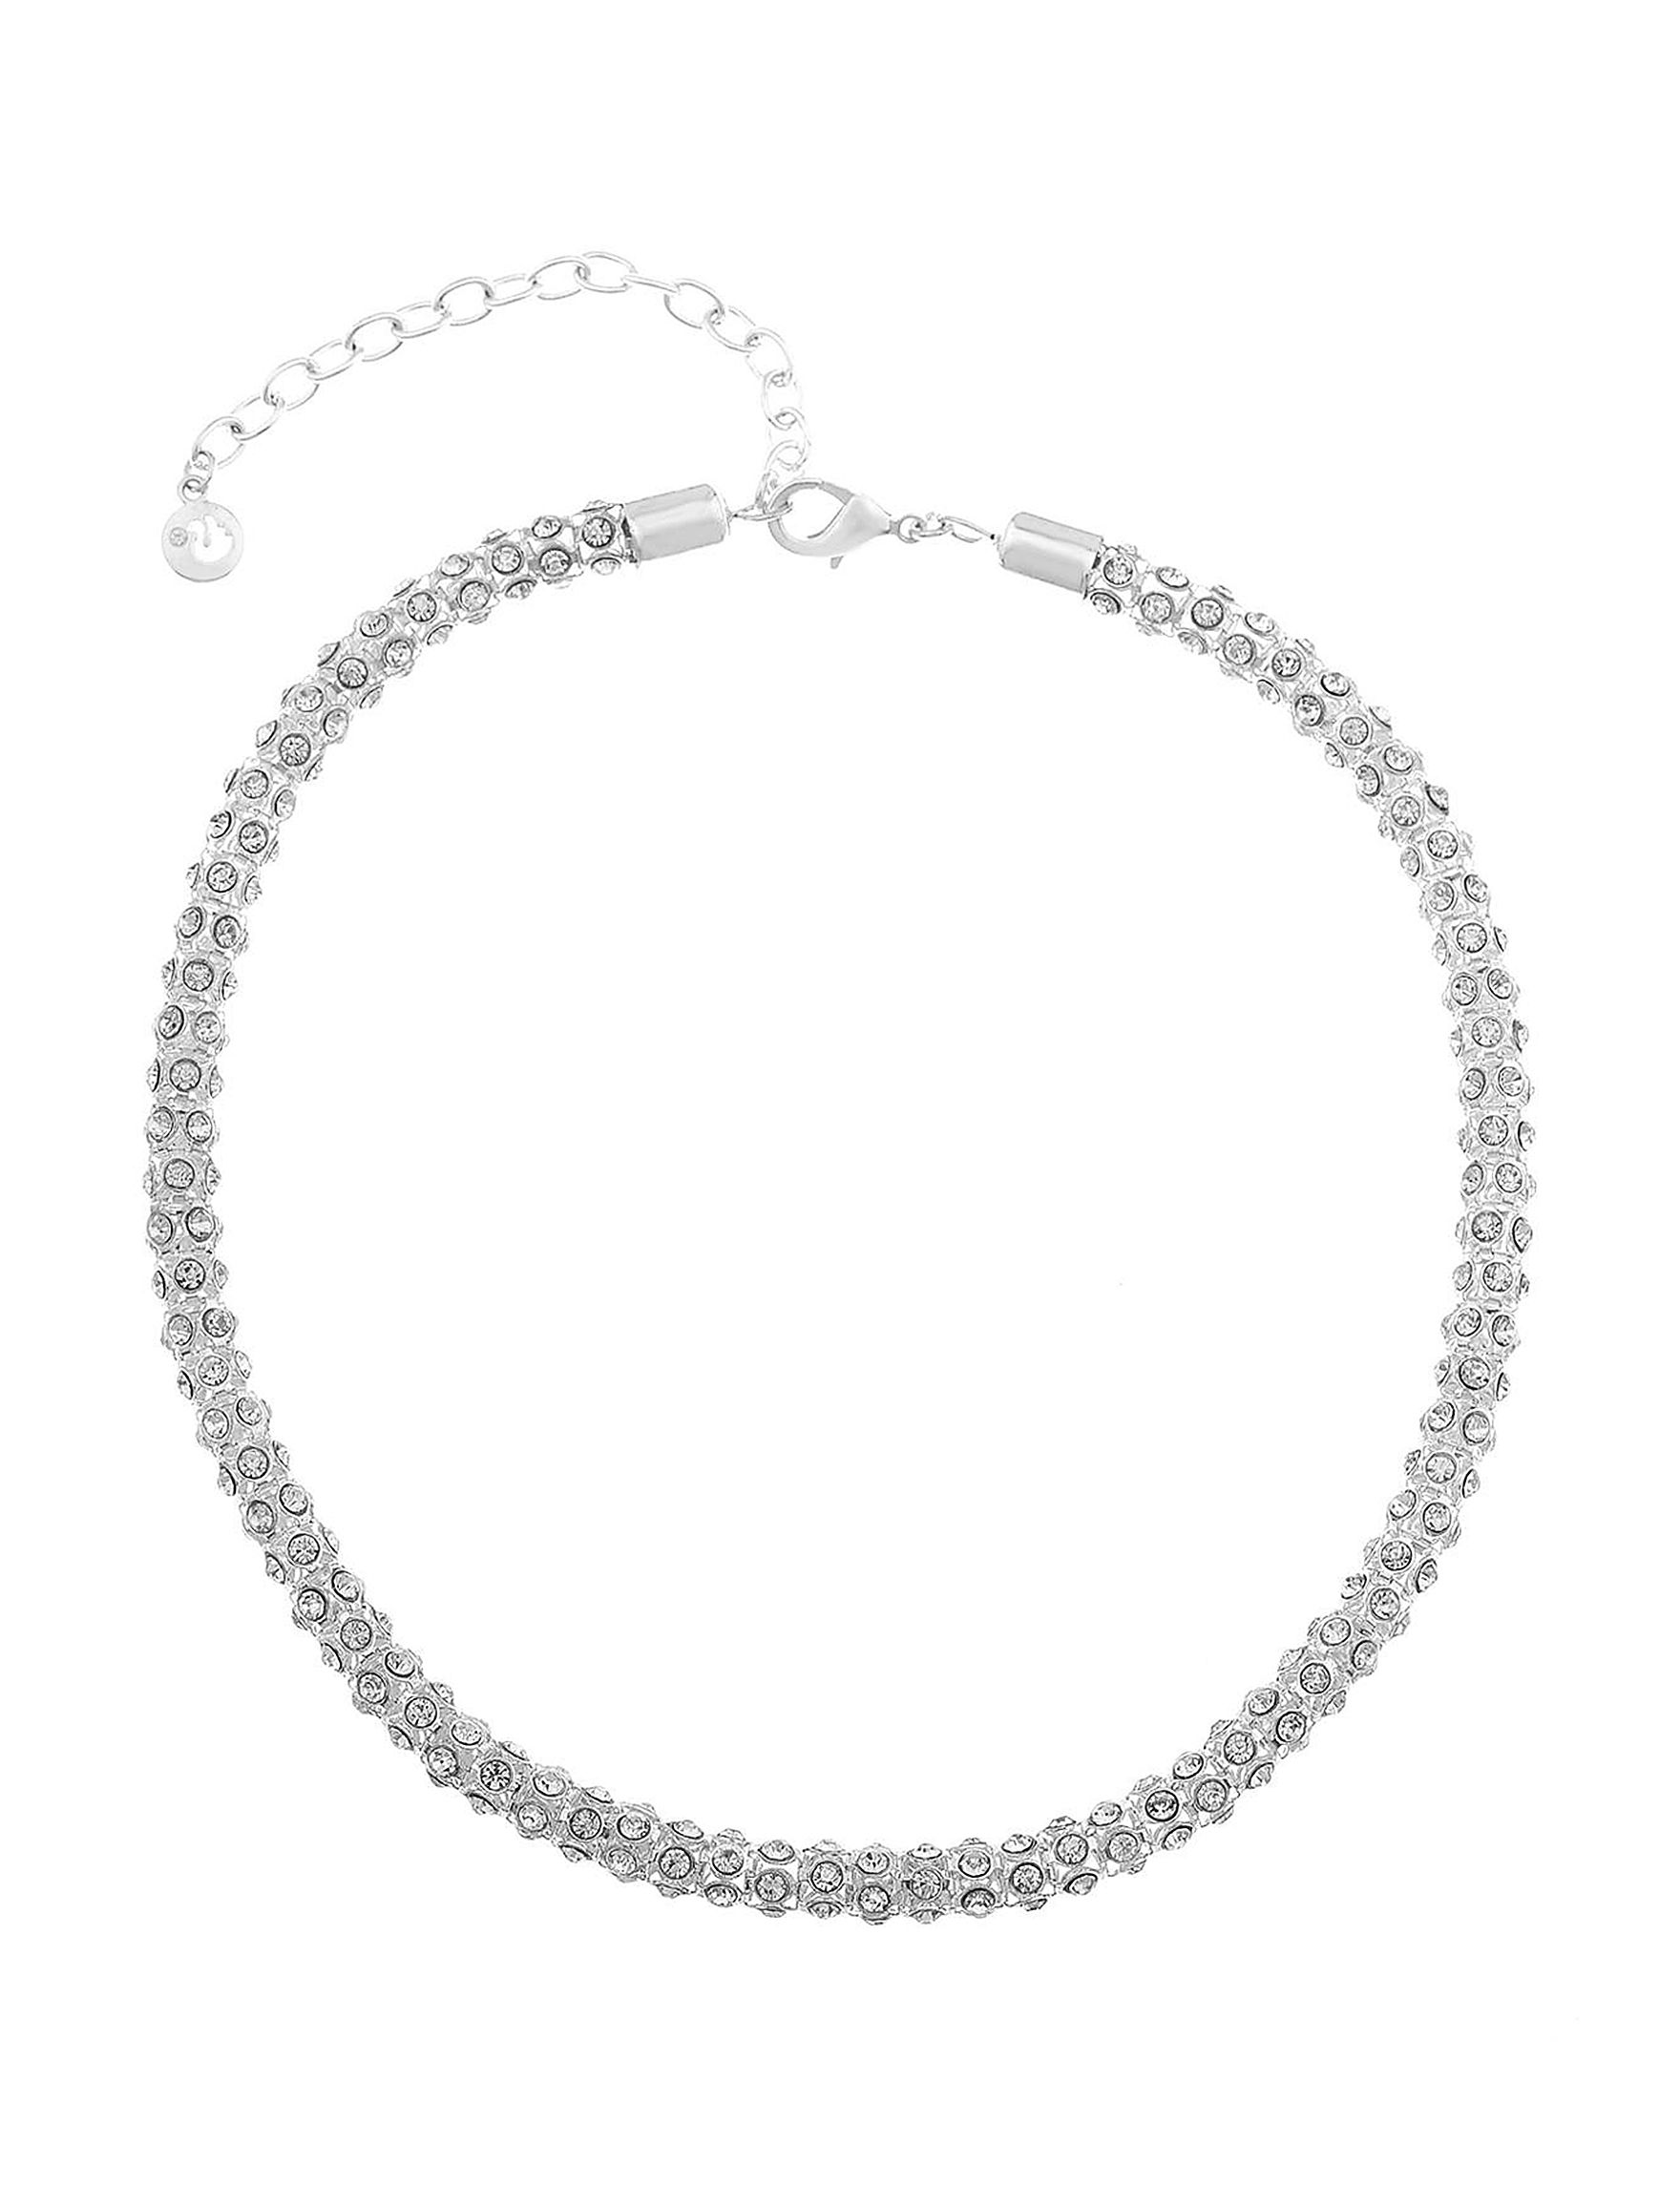 Gloria Vanderbilt Silver Fashion Jewelry